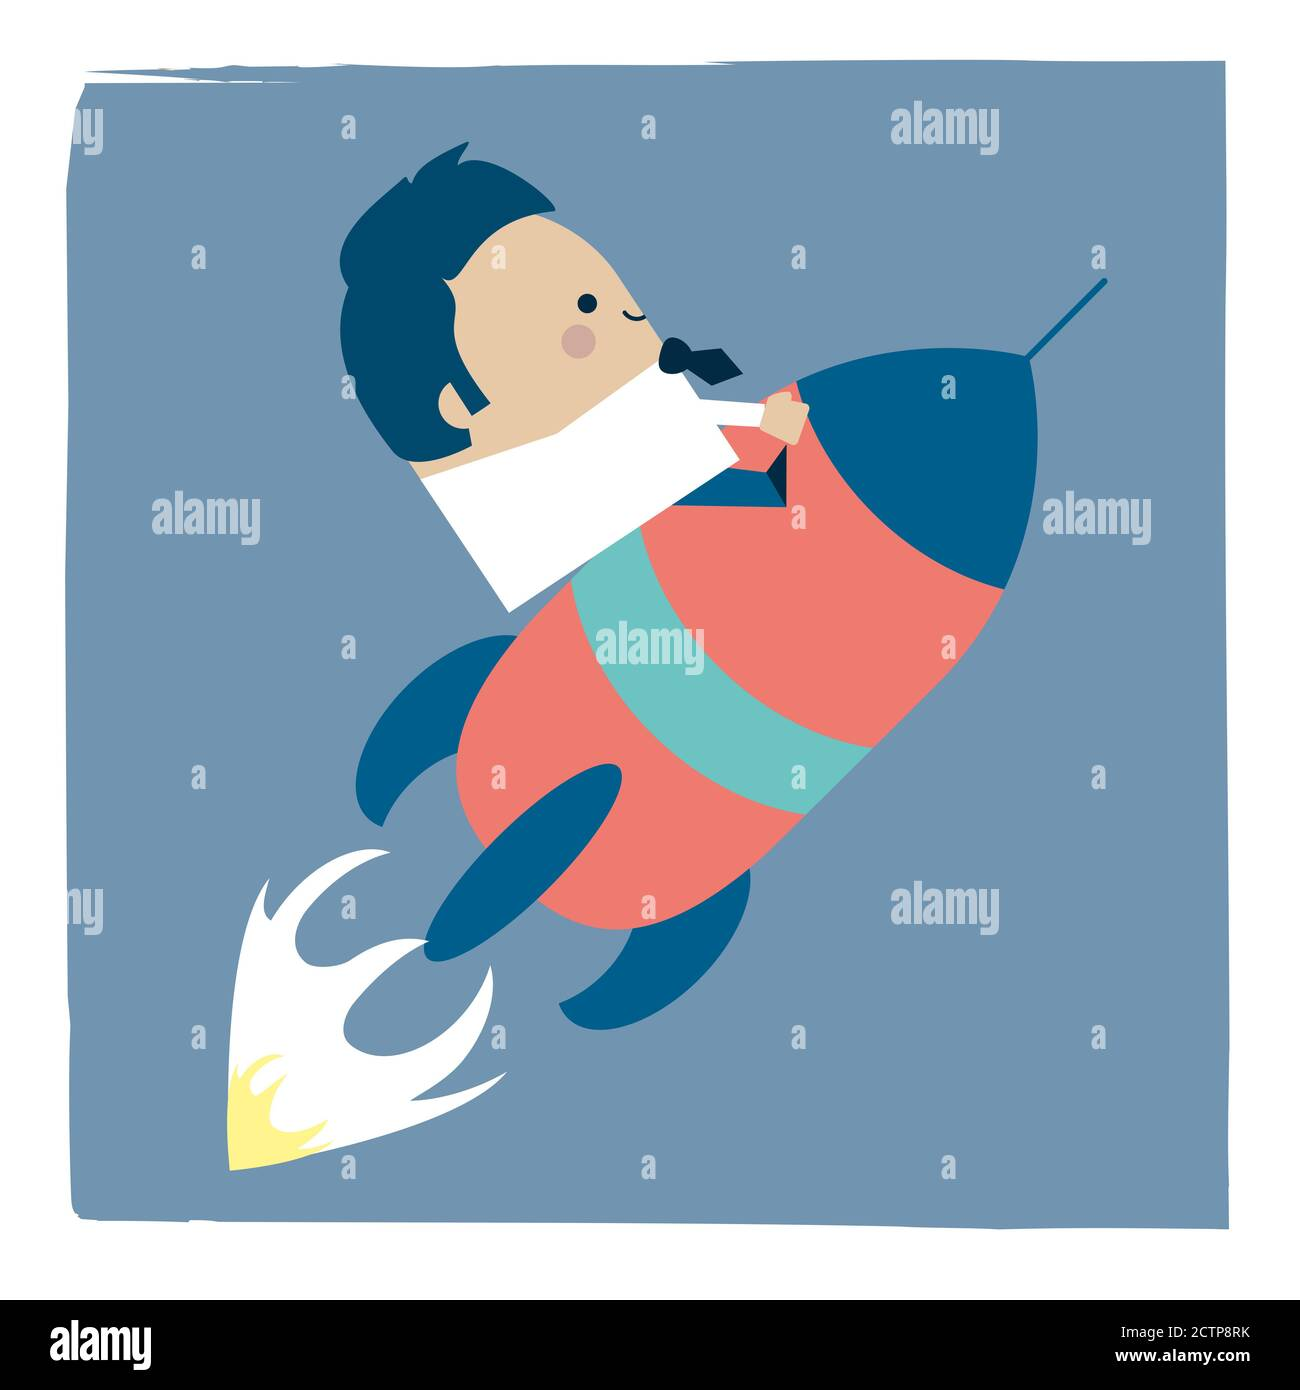 Illustration of businessman on a space rocket Stock Photo